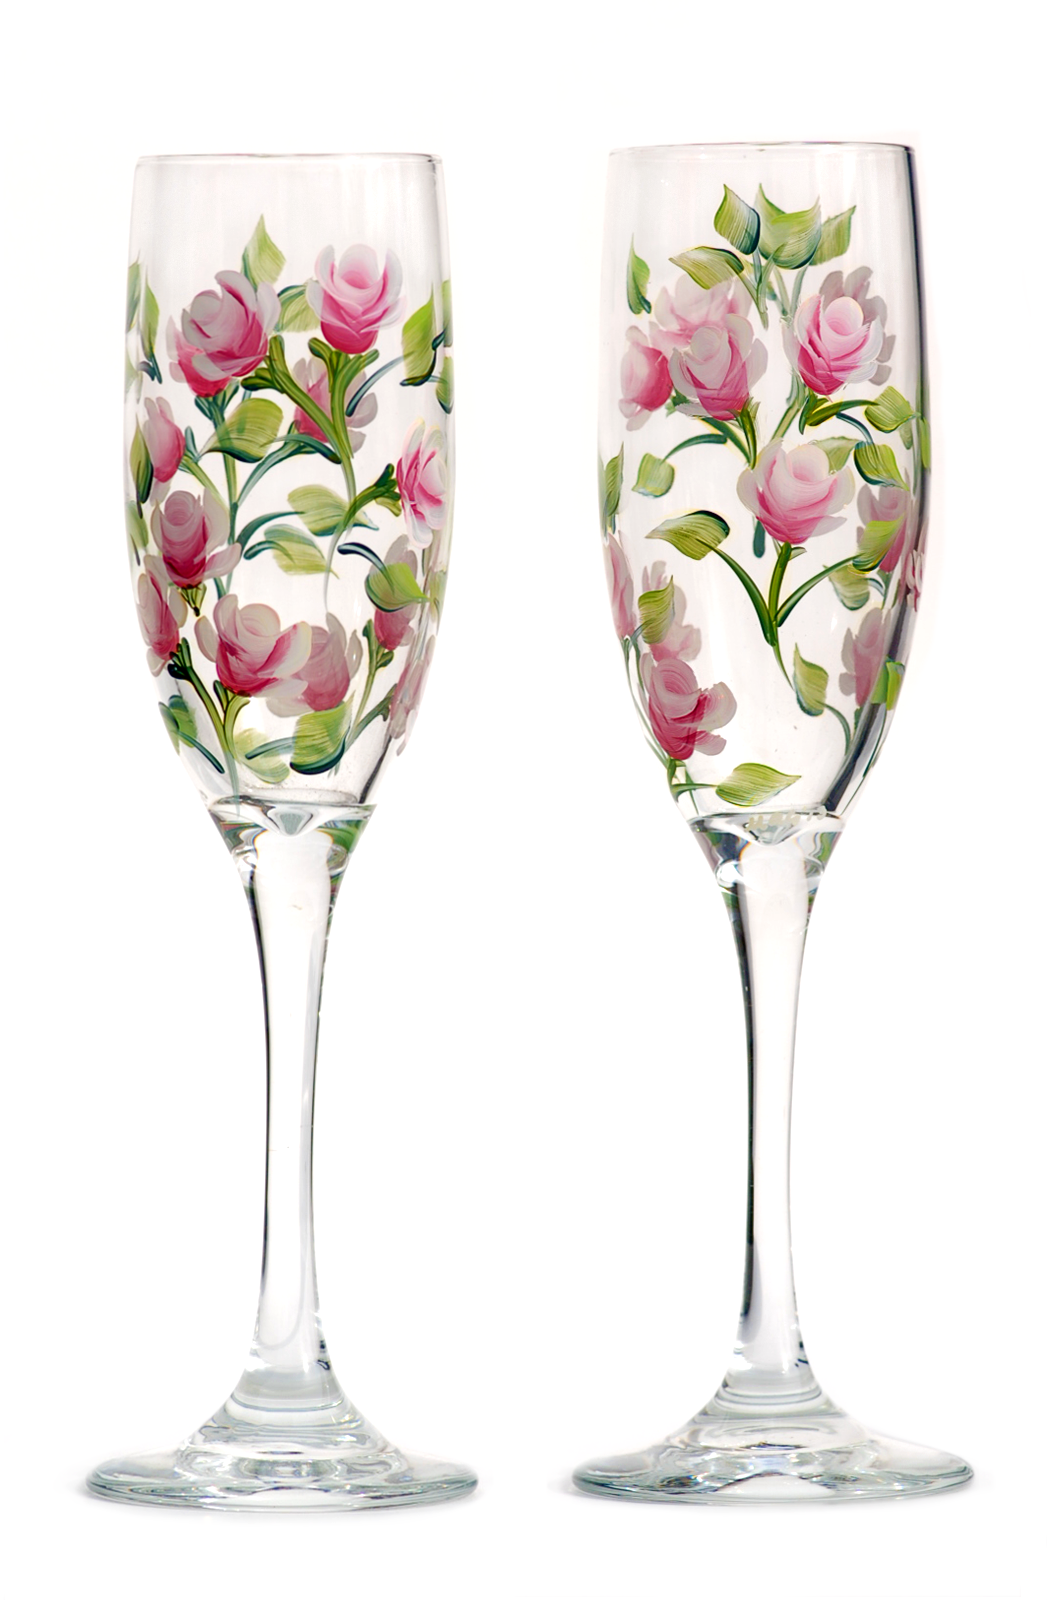 High Quality Wine Glasses Pink Rosebud Champagne Flutes Set Of 2 Products